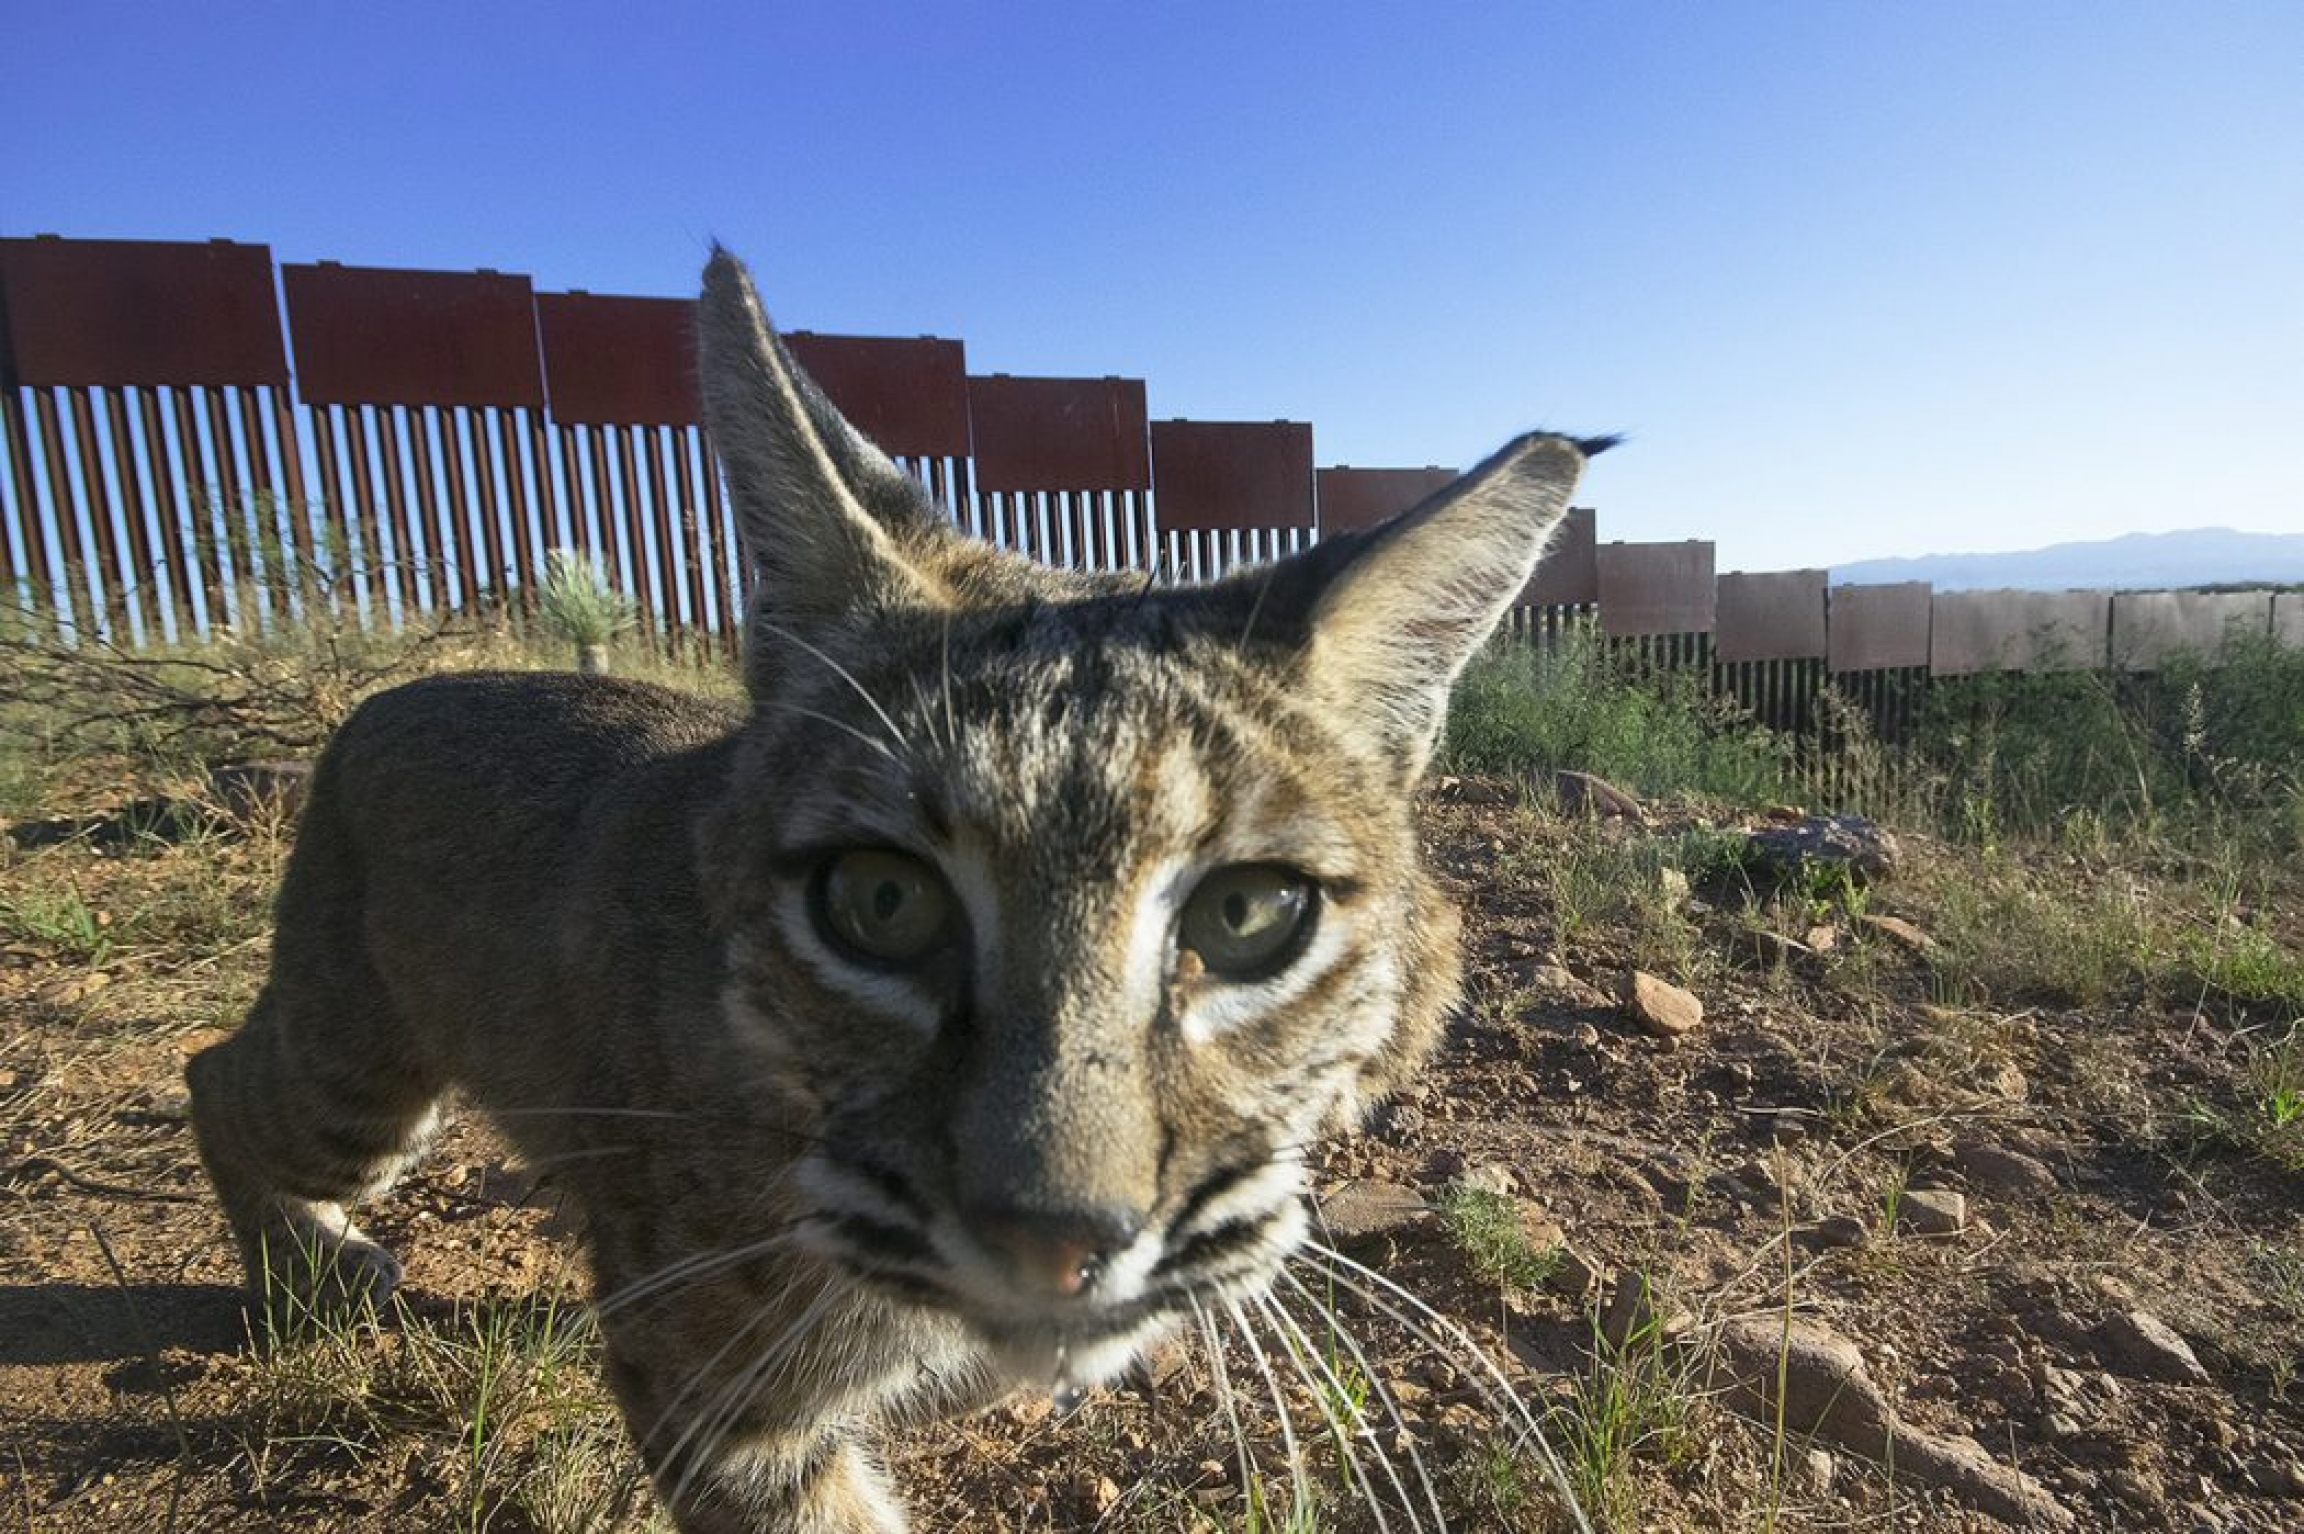 A bobcat is shown looking directly into a camera with the US-Mexico border wall in the distance.